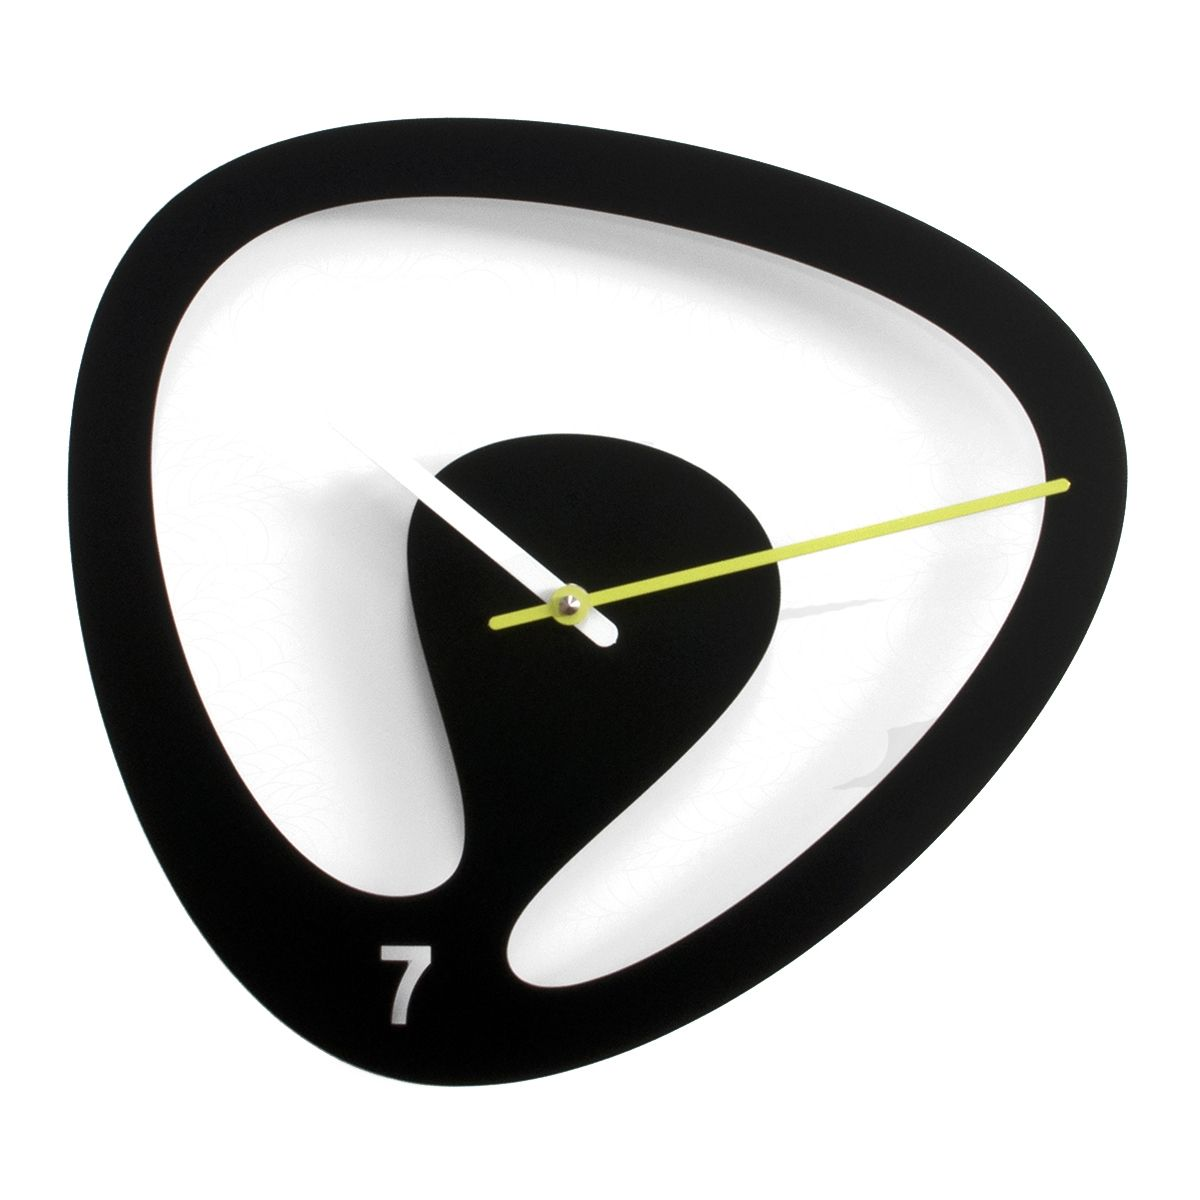 Clocks Add Decor as Well as Function - Seven Clock